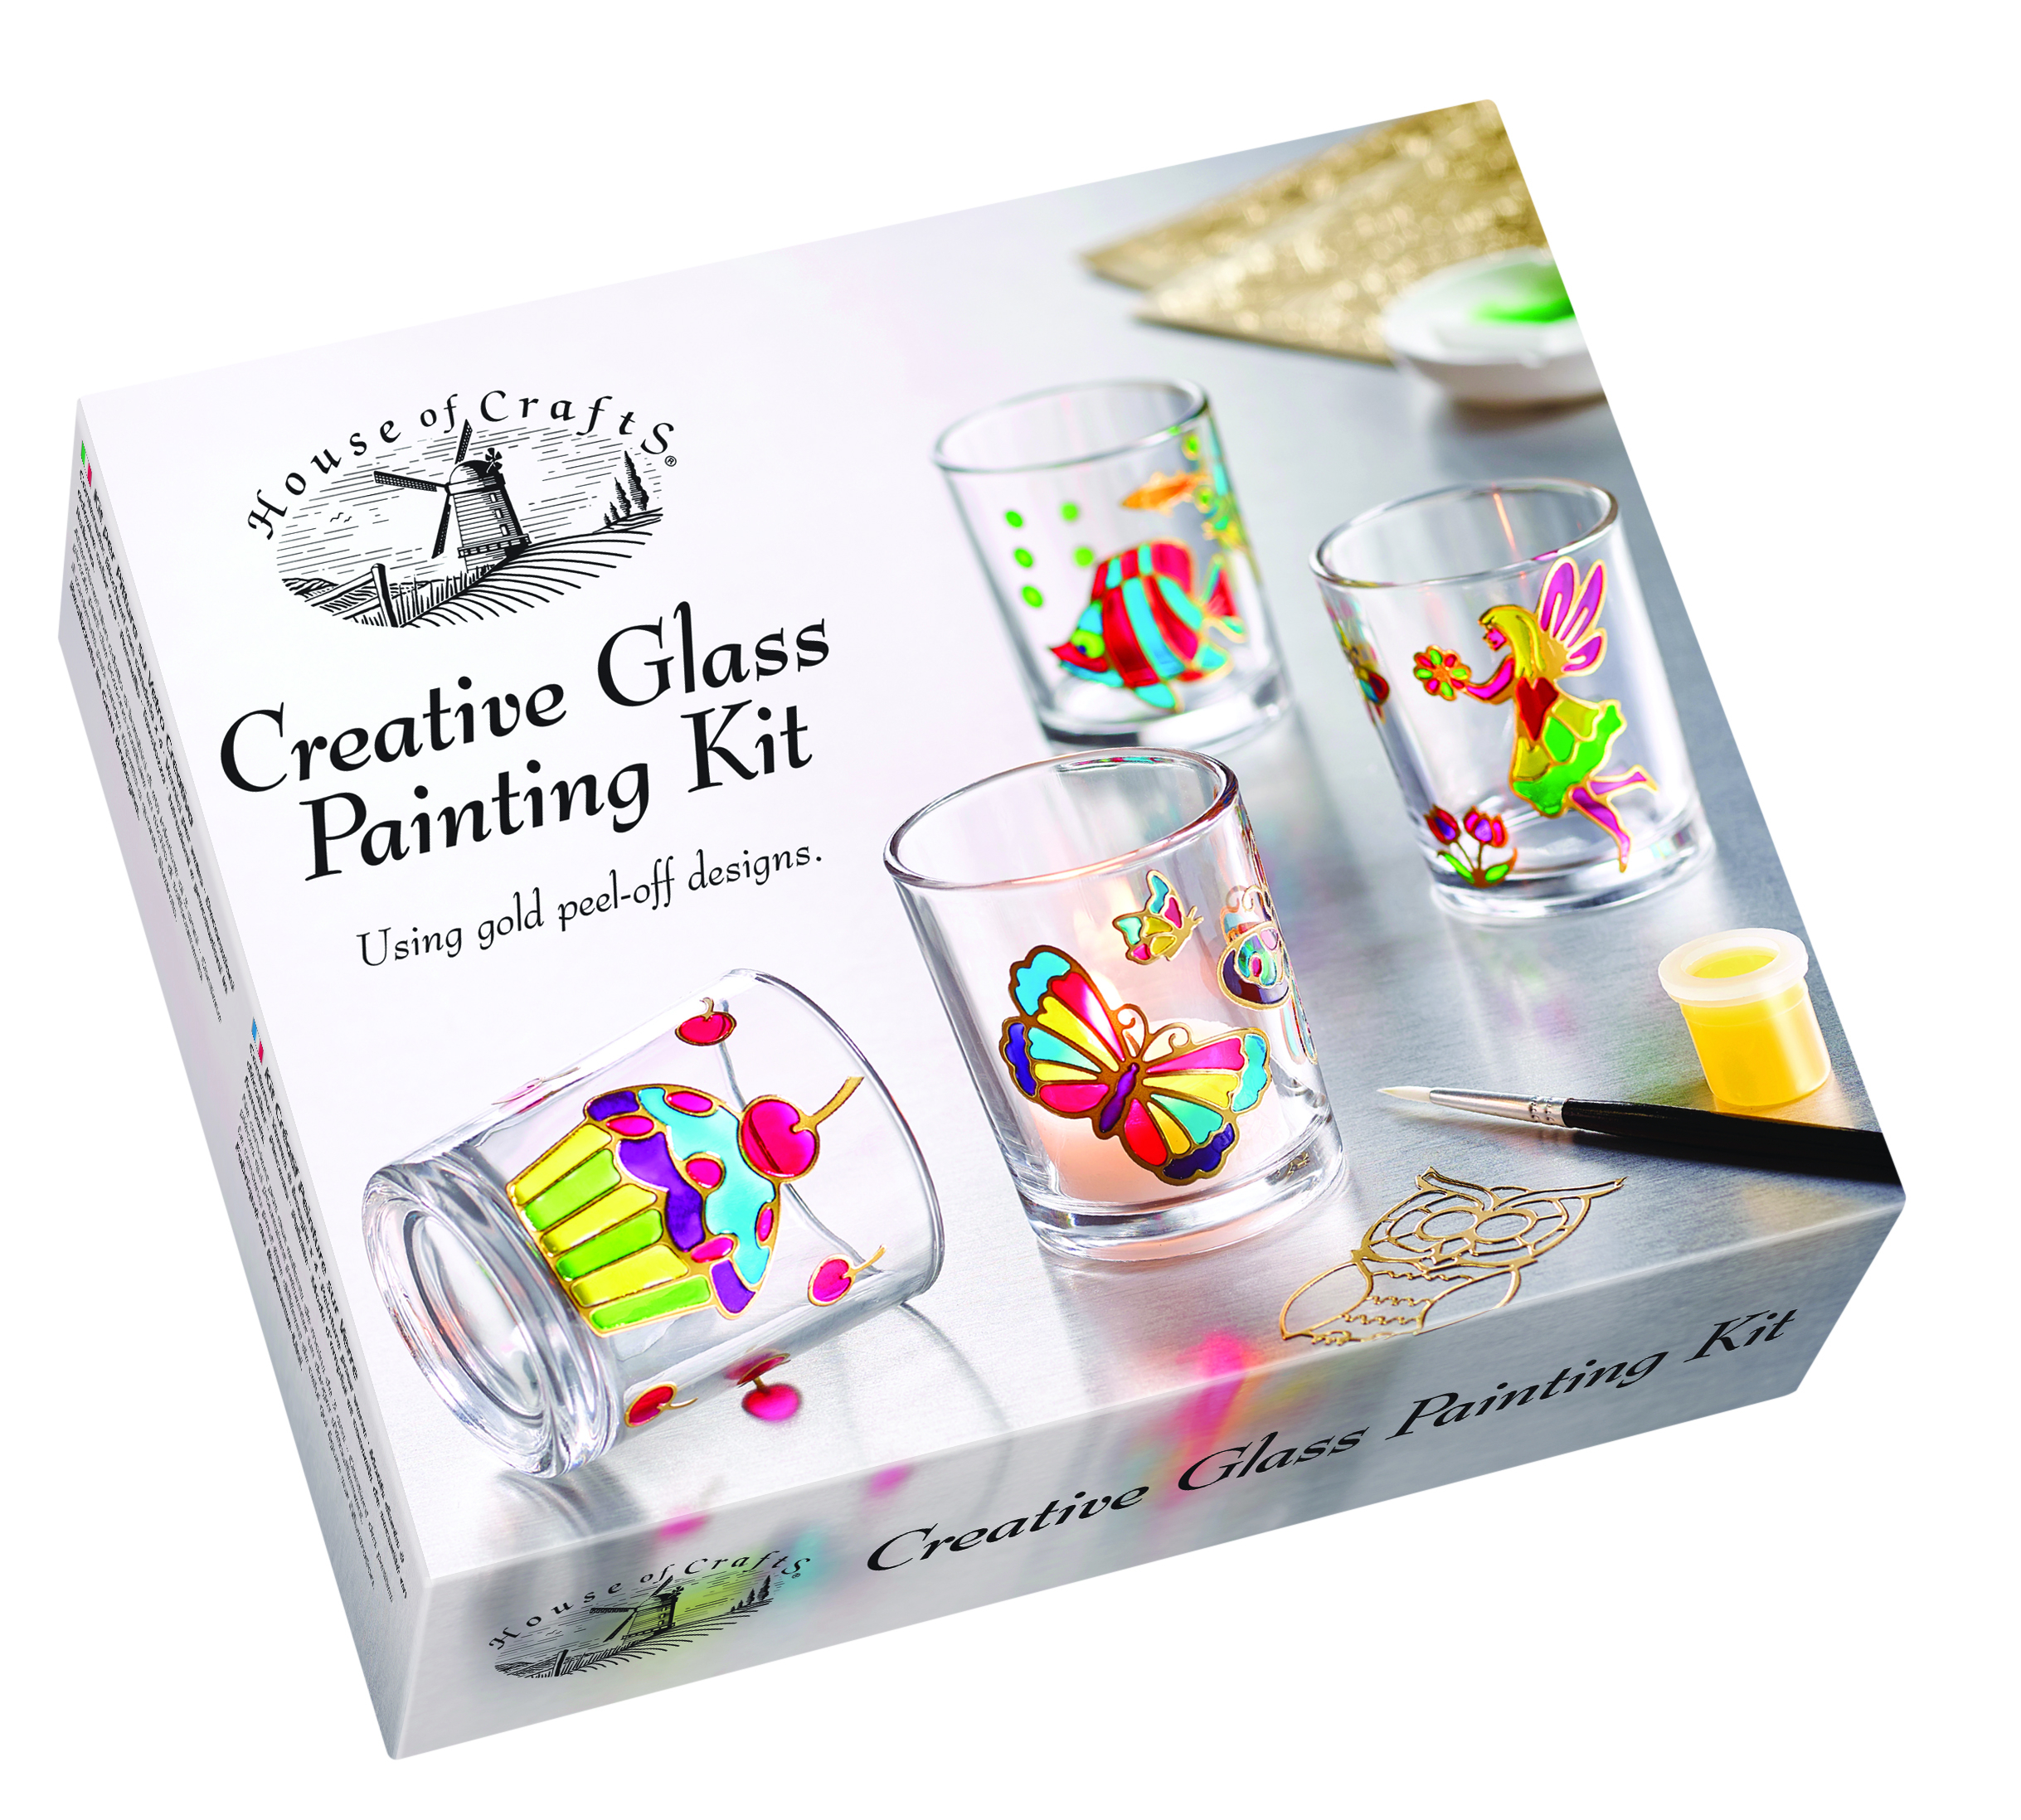 HOUSE OF CRAFTS CREATIVE GLASS PAINTING KIT HC600